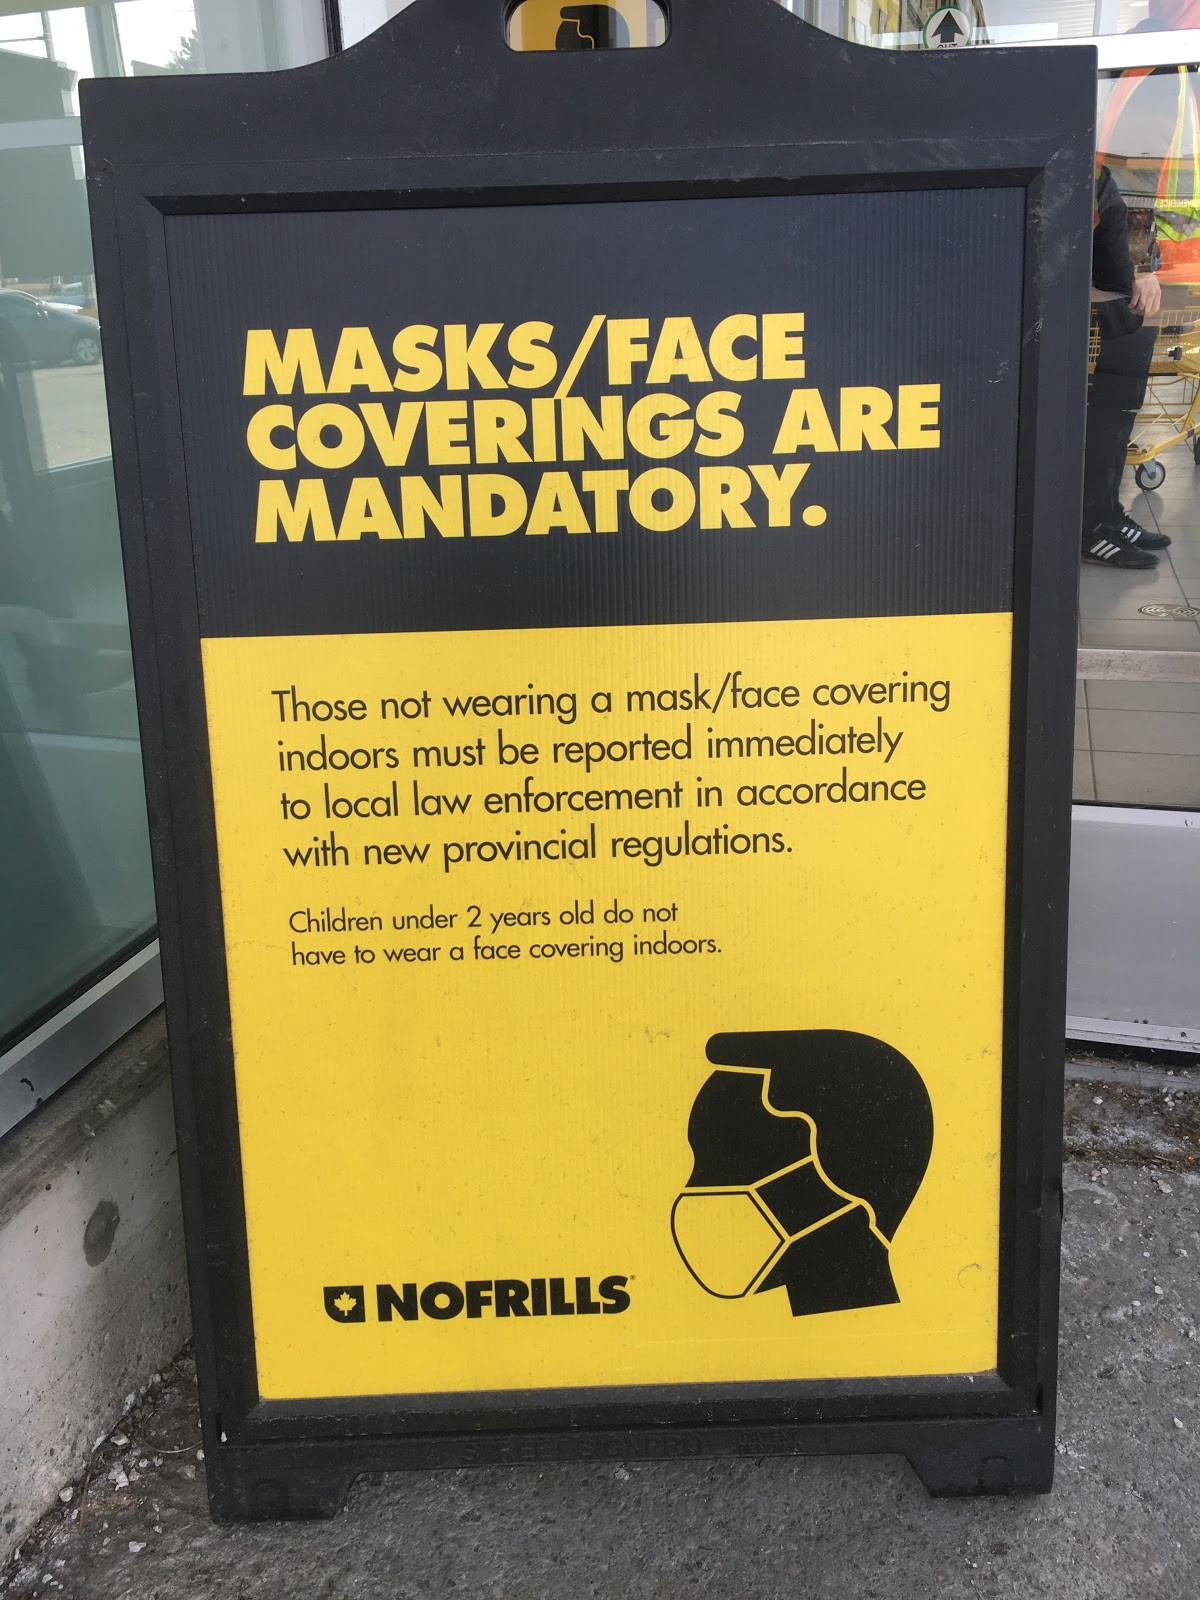 """A """"Masks/face coverings are mandatory,"""" sign at a local No Frills supermarket in Pickering, Ontario"""